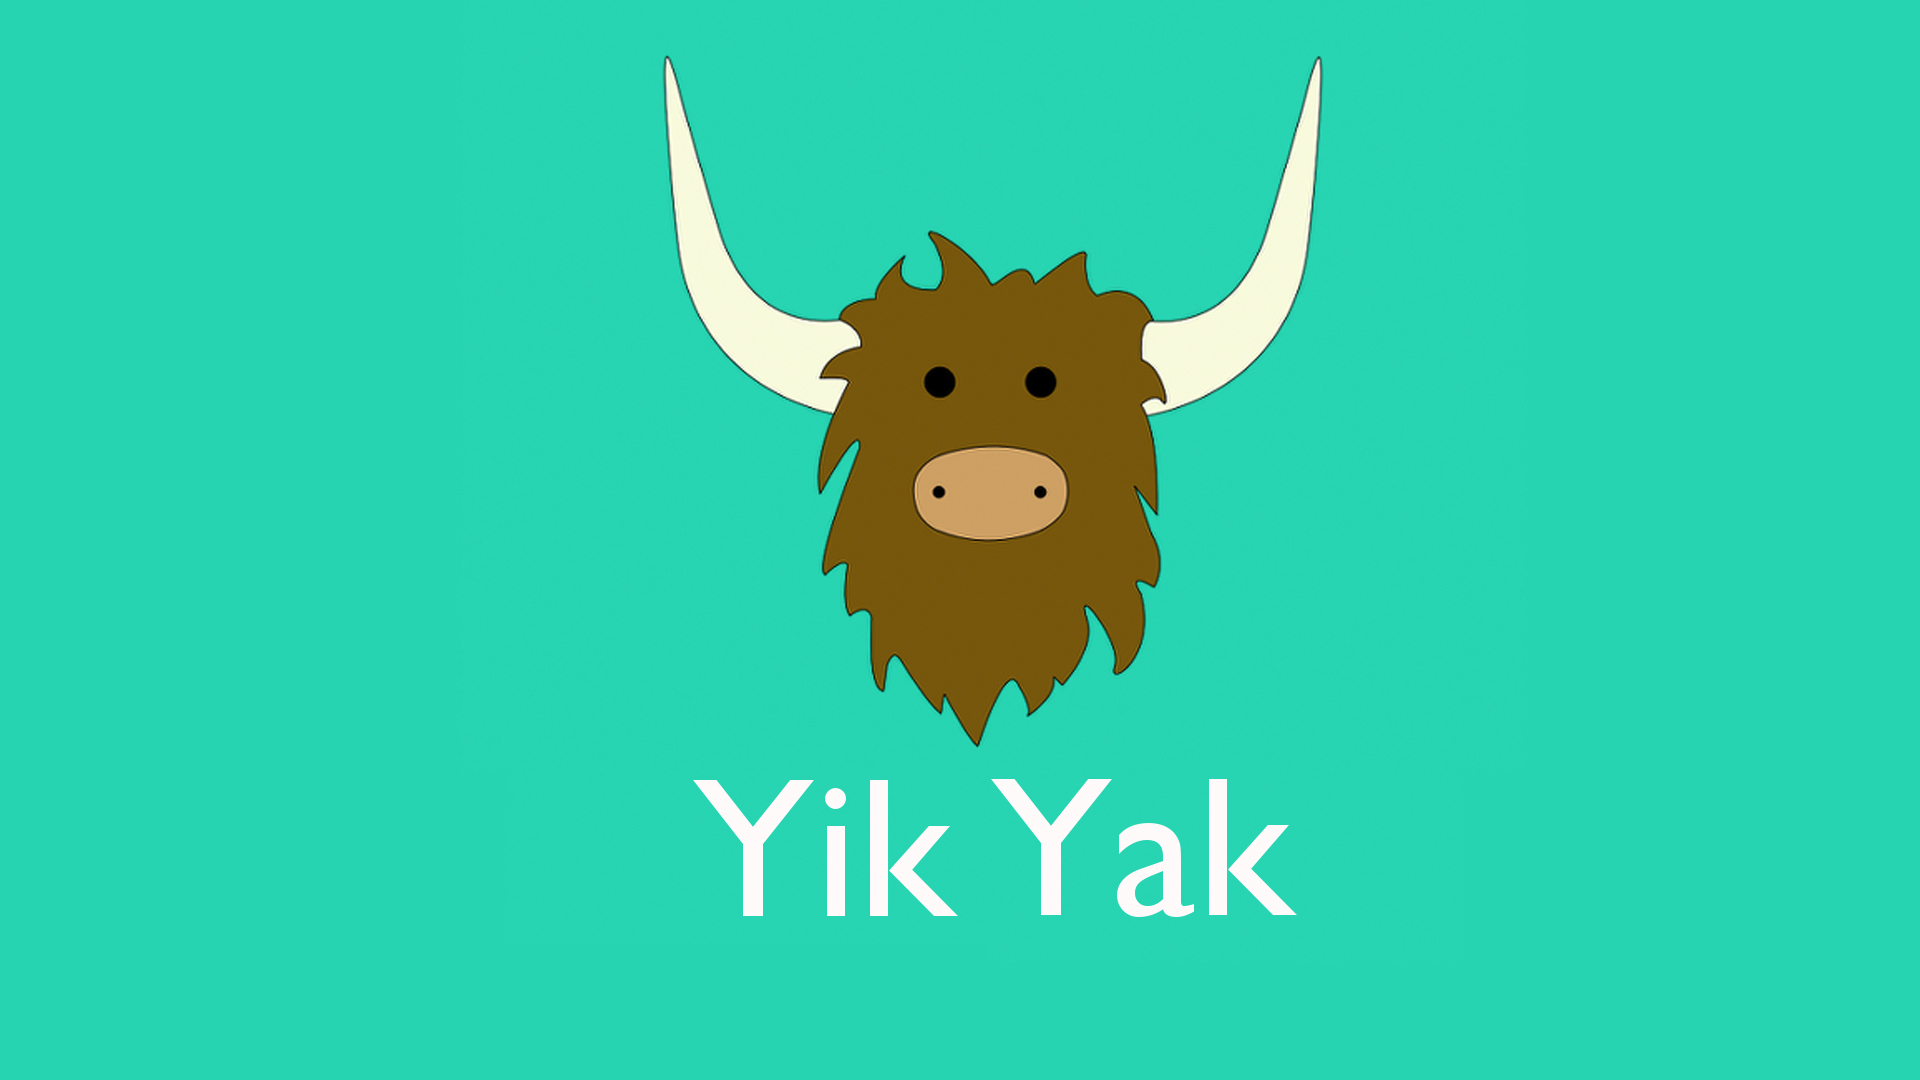 Coalition calls for censorship of Yik Yak